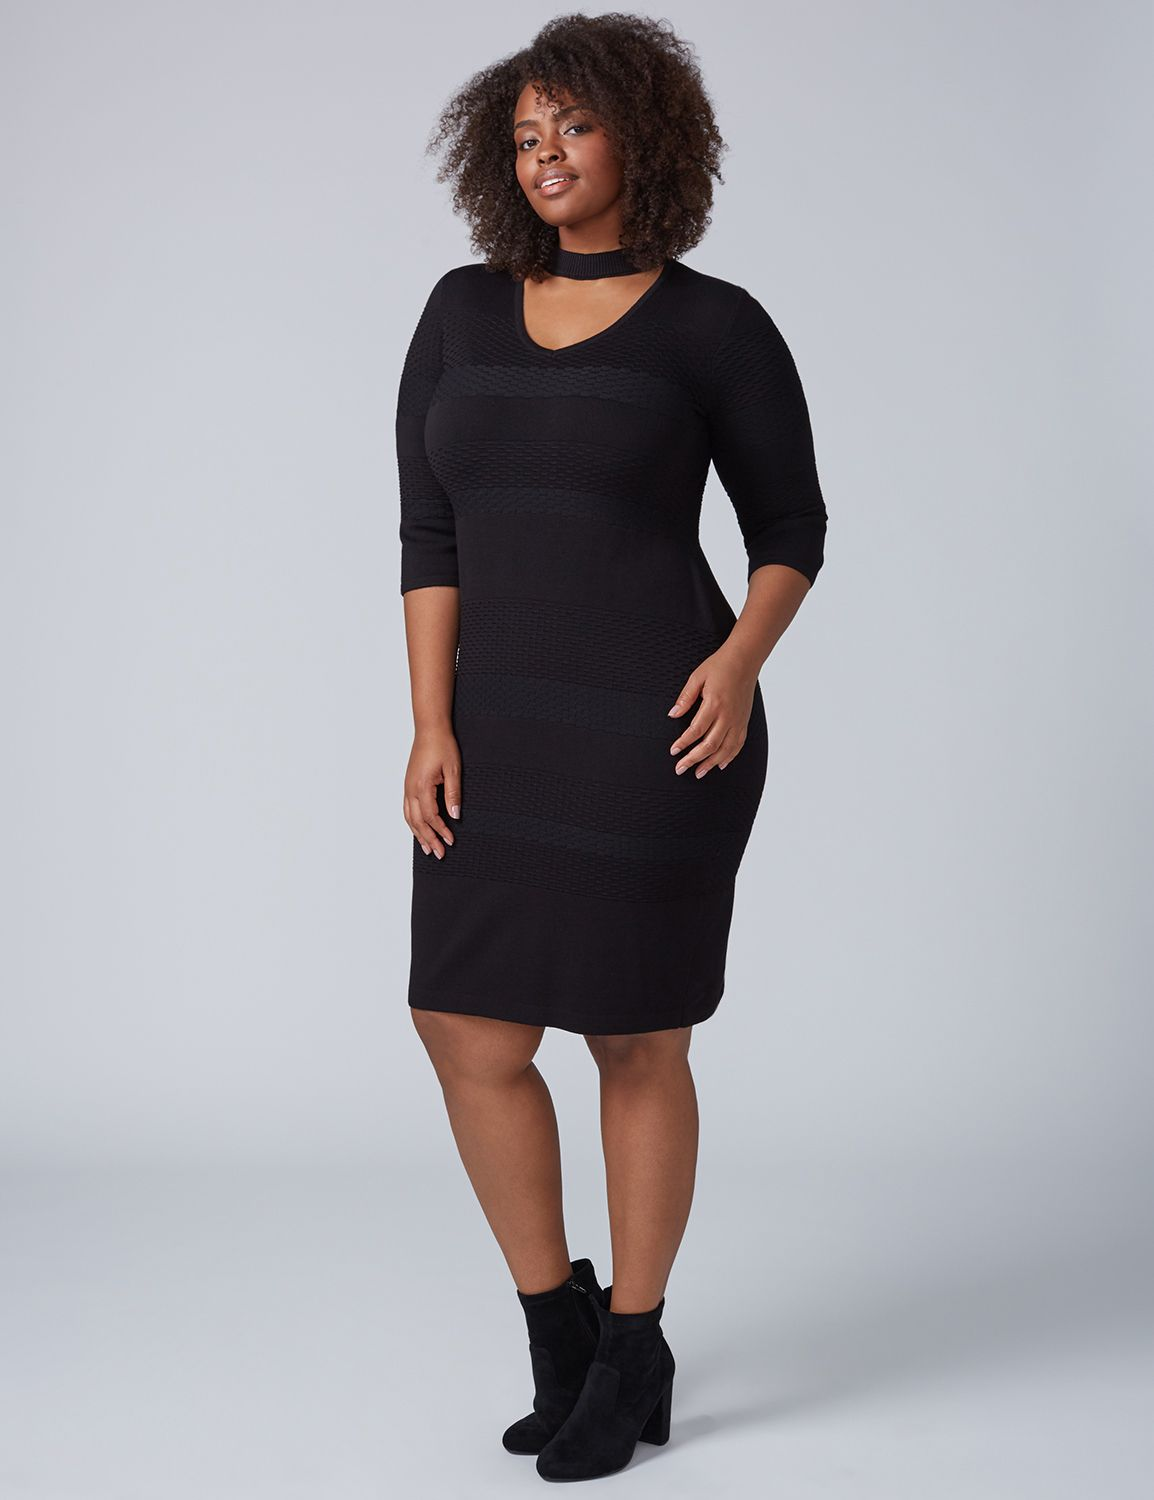 Lane Bryant Women's 3 / 4 Sleeve Choker Sweater Dress 18 / 20 Black